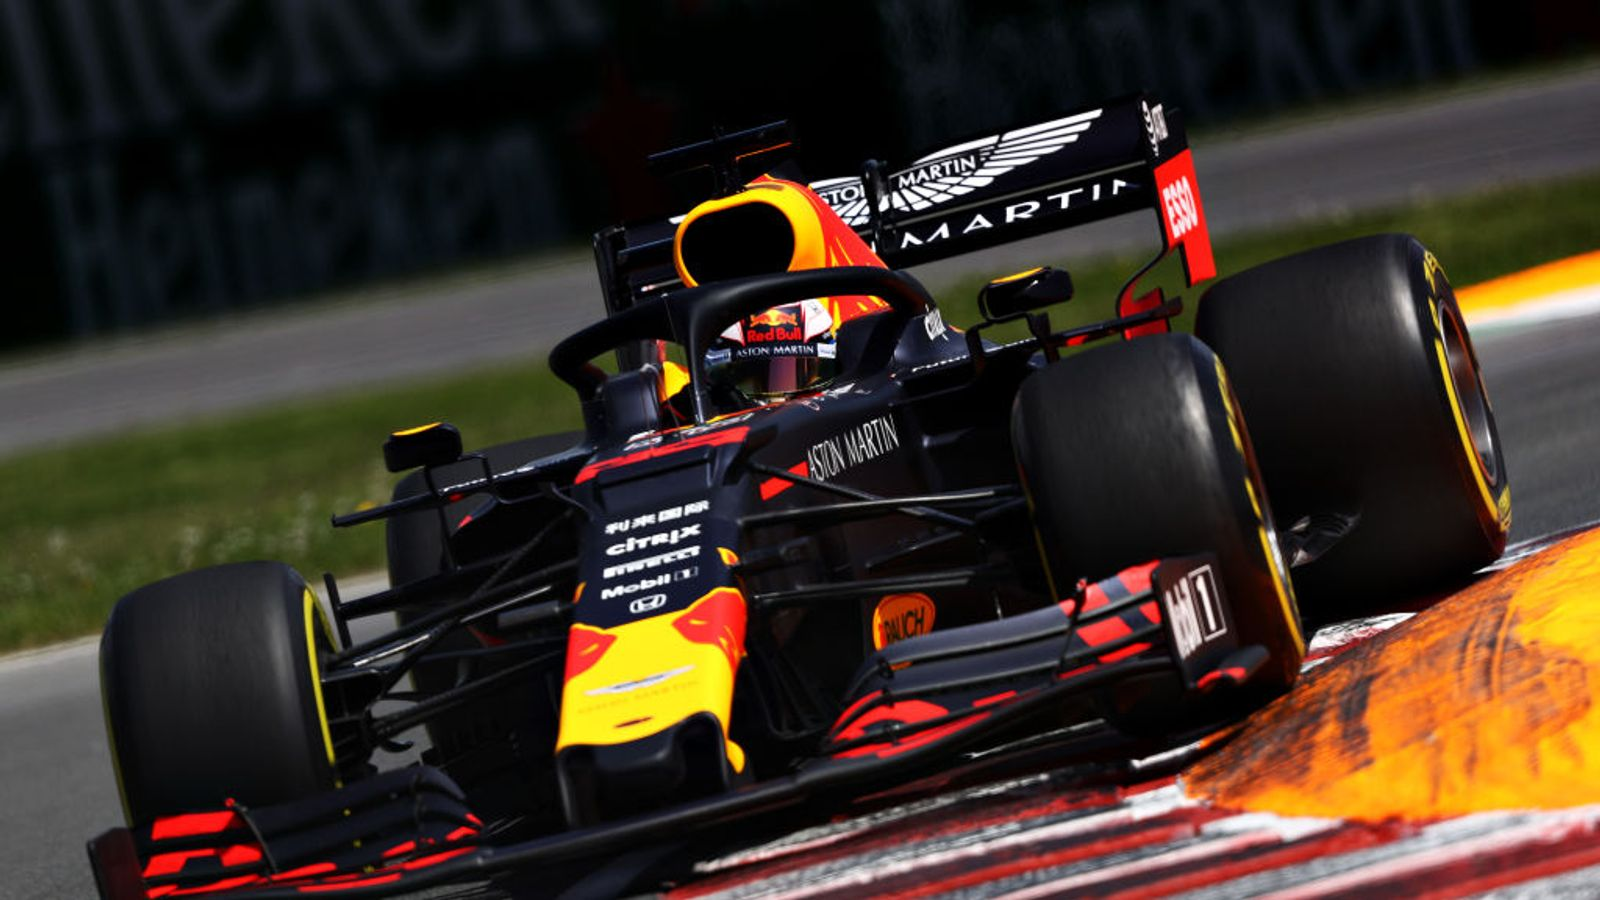 French GP: Honda introduce new engines for Red Bull, Toro Rosso